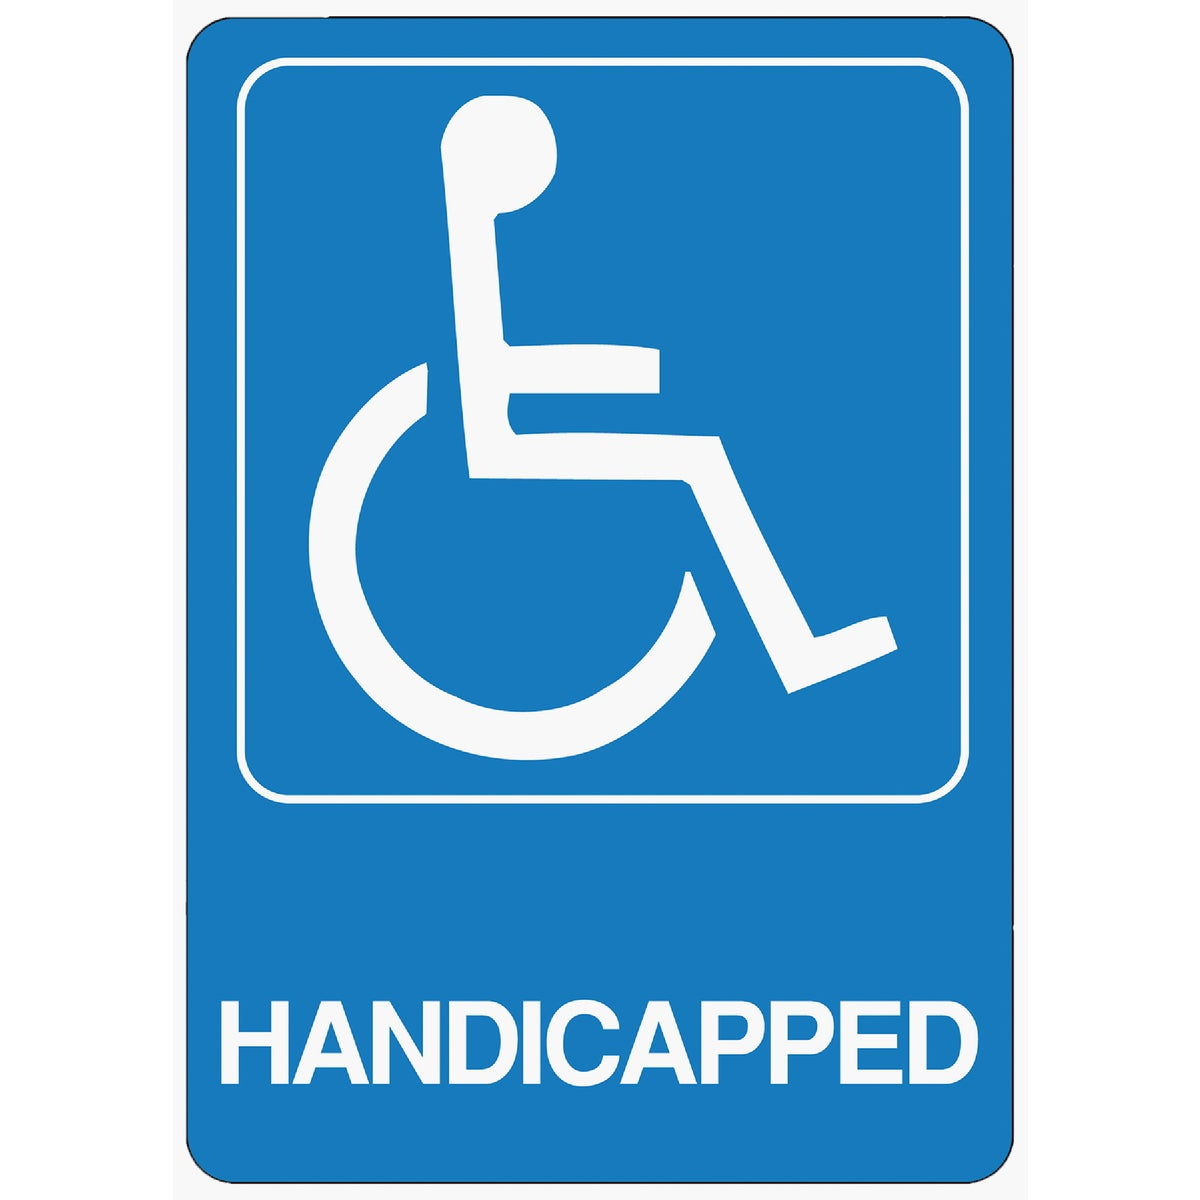 5X7 HANDICAPPED SIGN